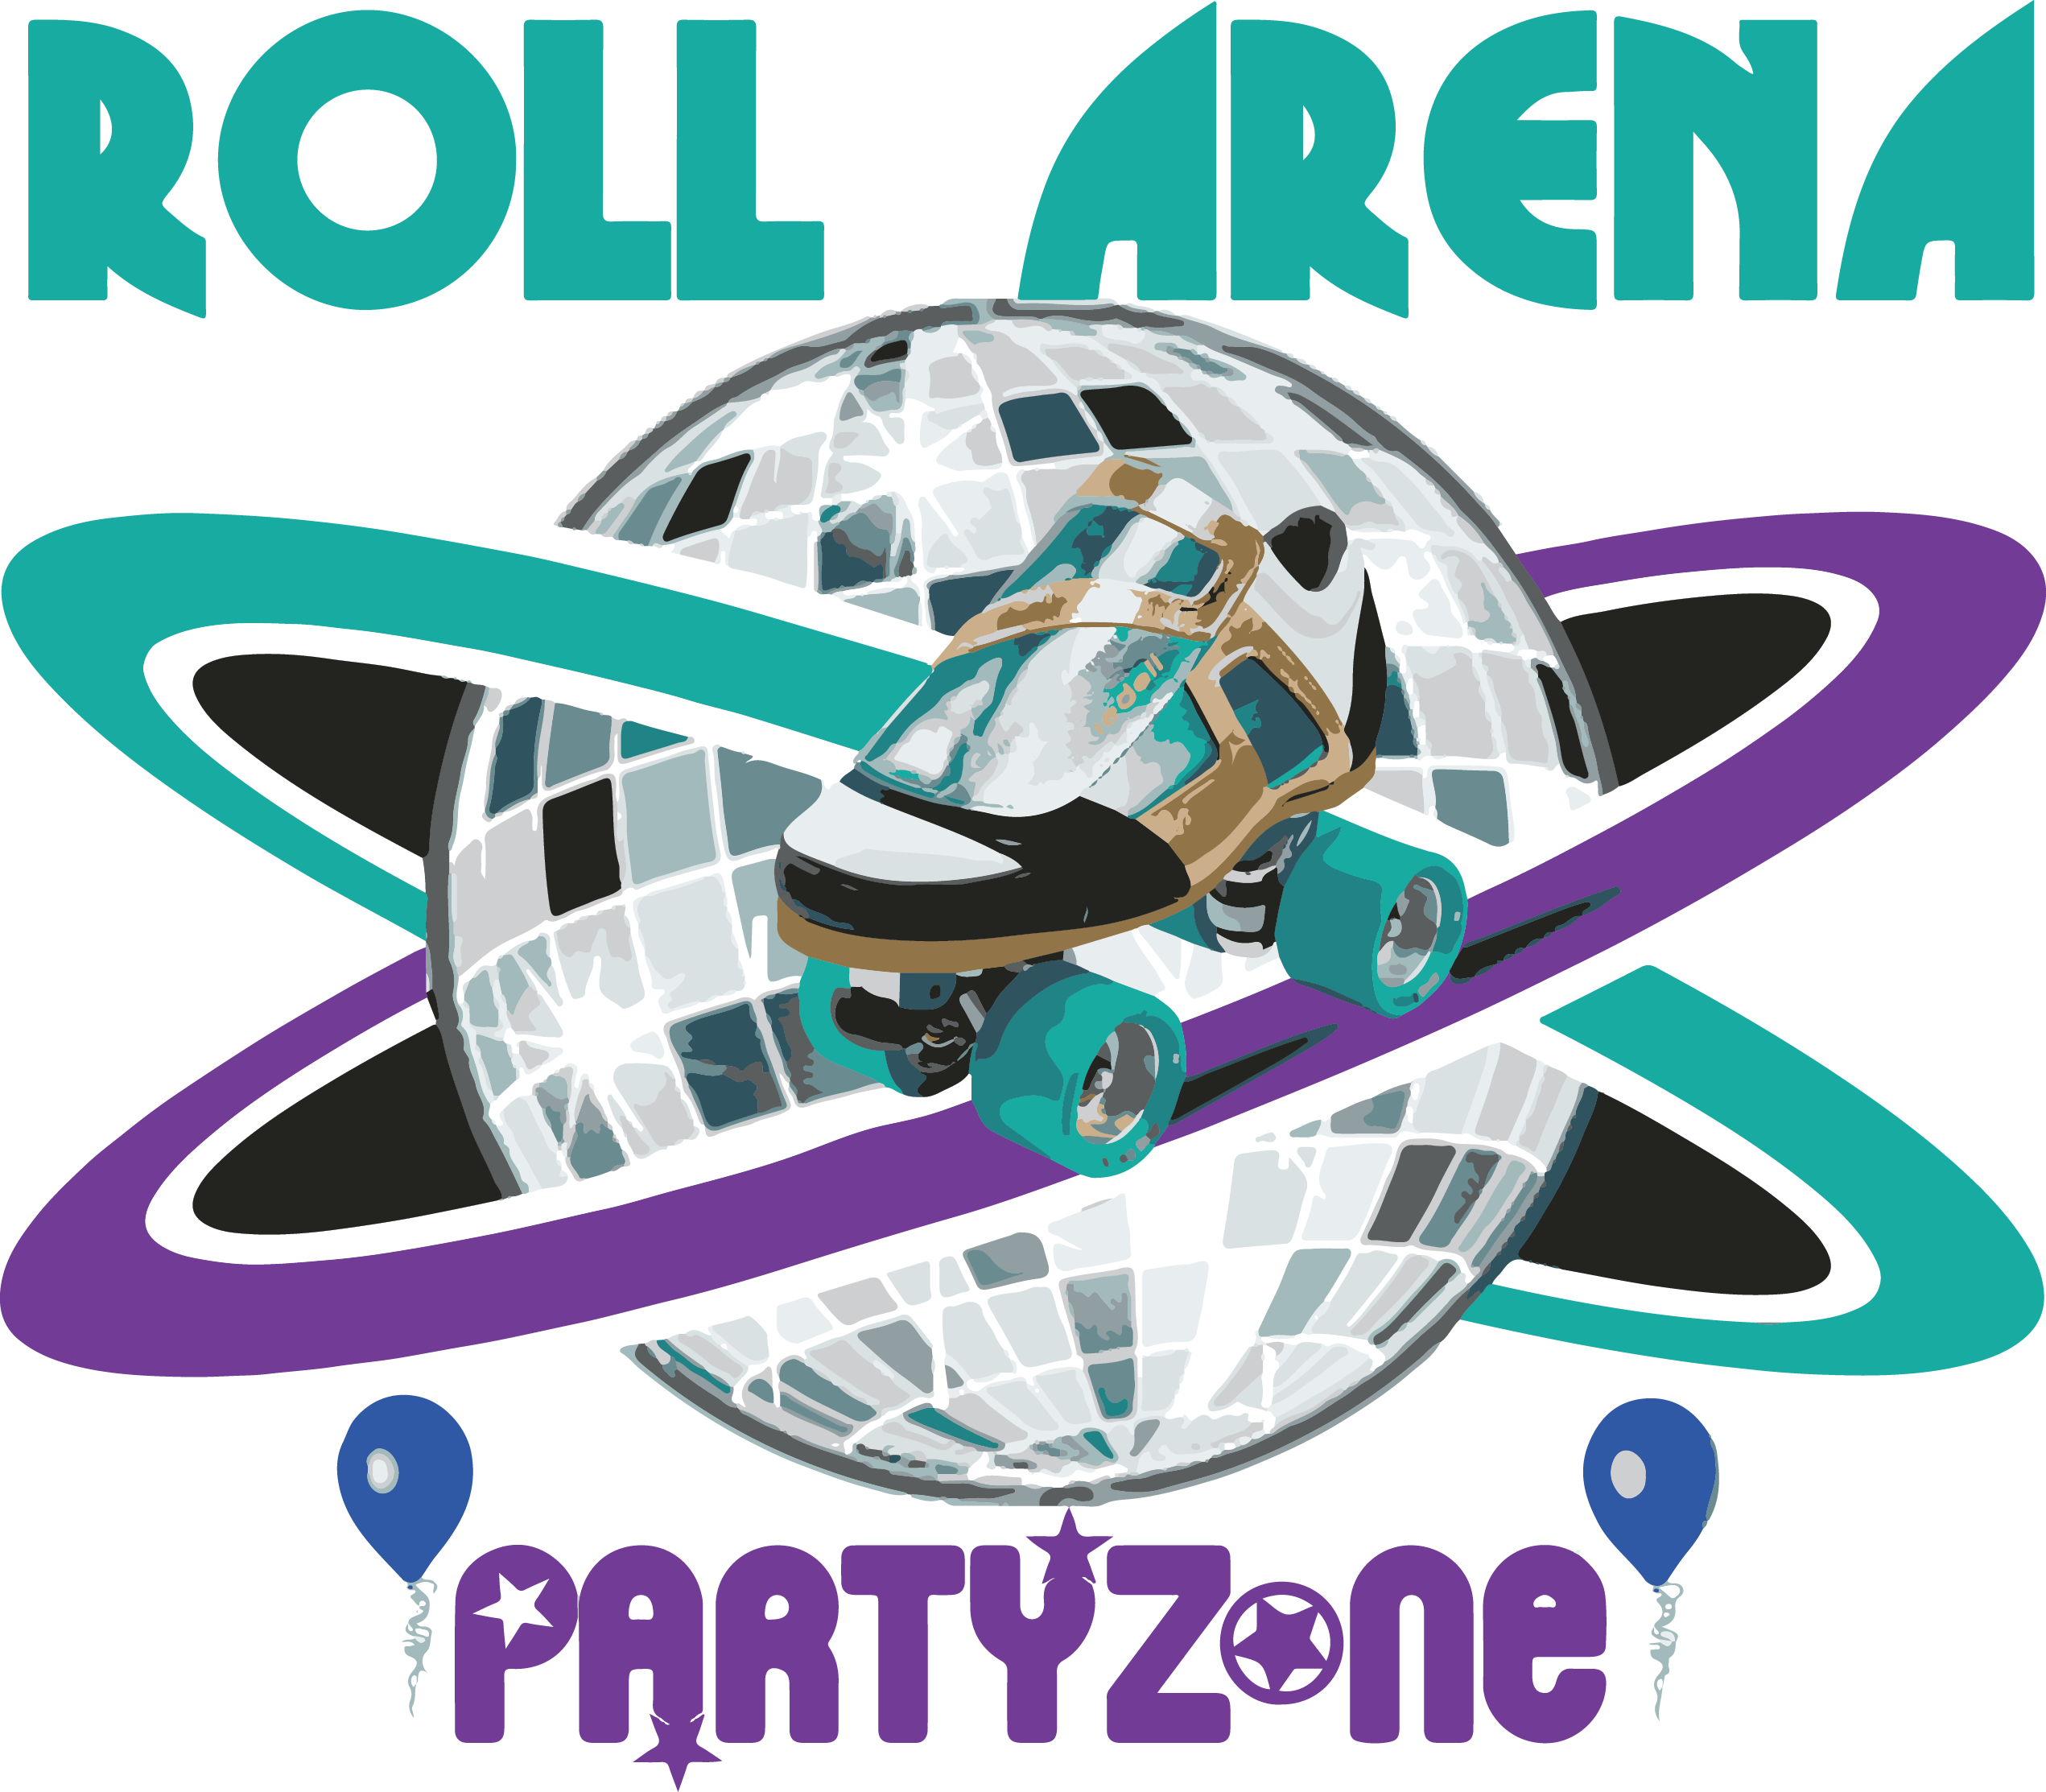 Roll Arena